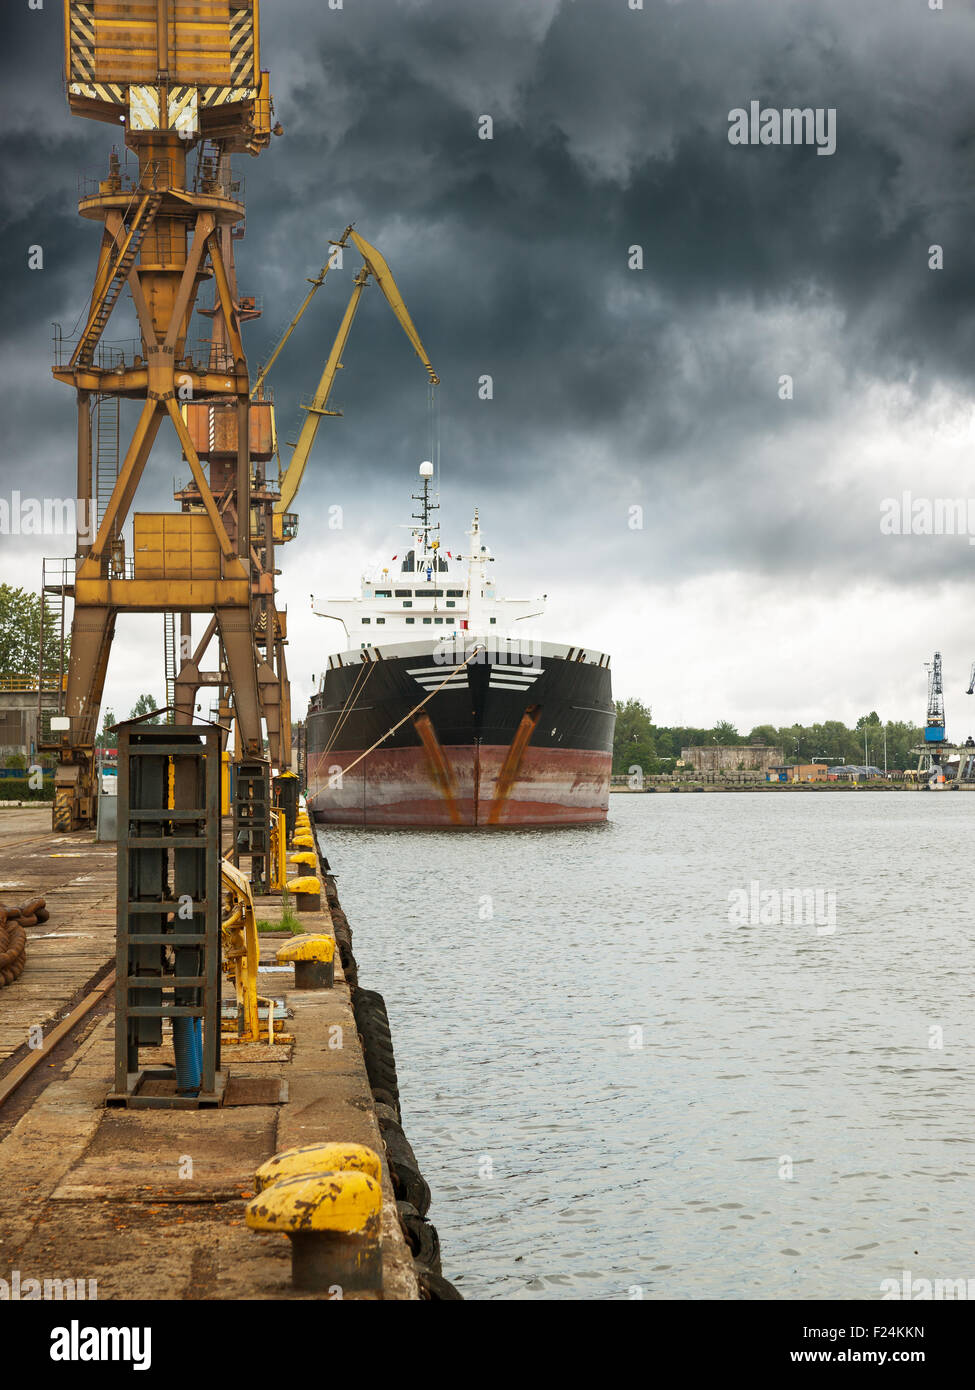 Cargo ship in port at cloudy day. - Stock Image